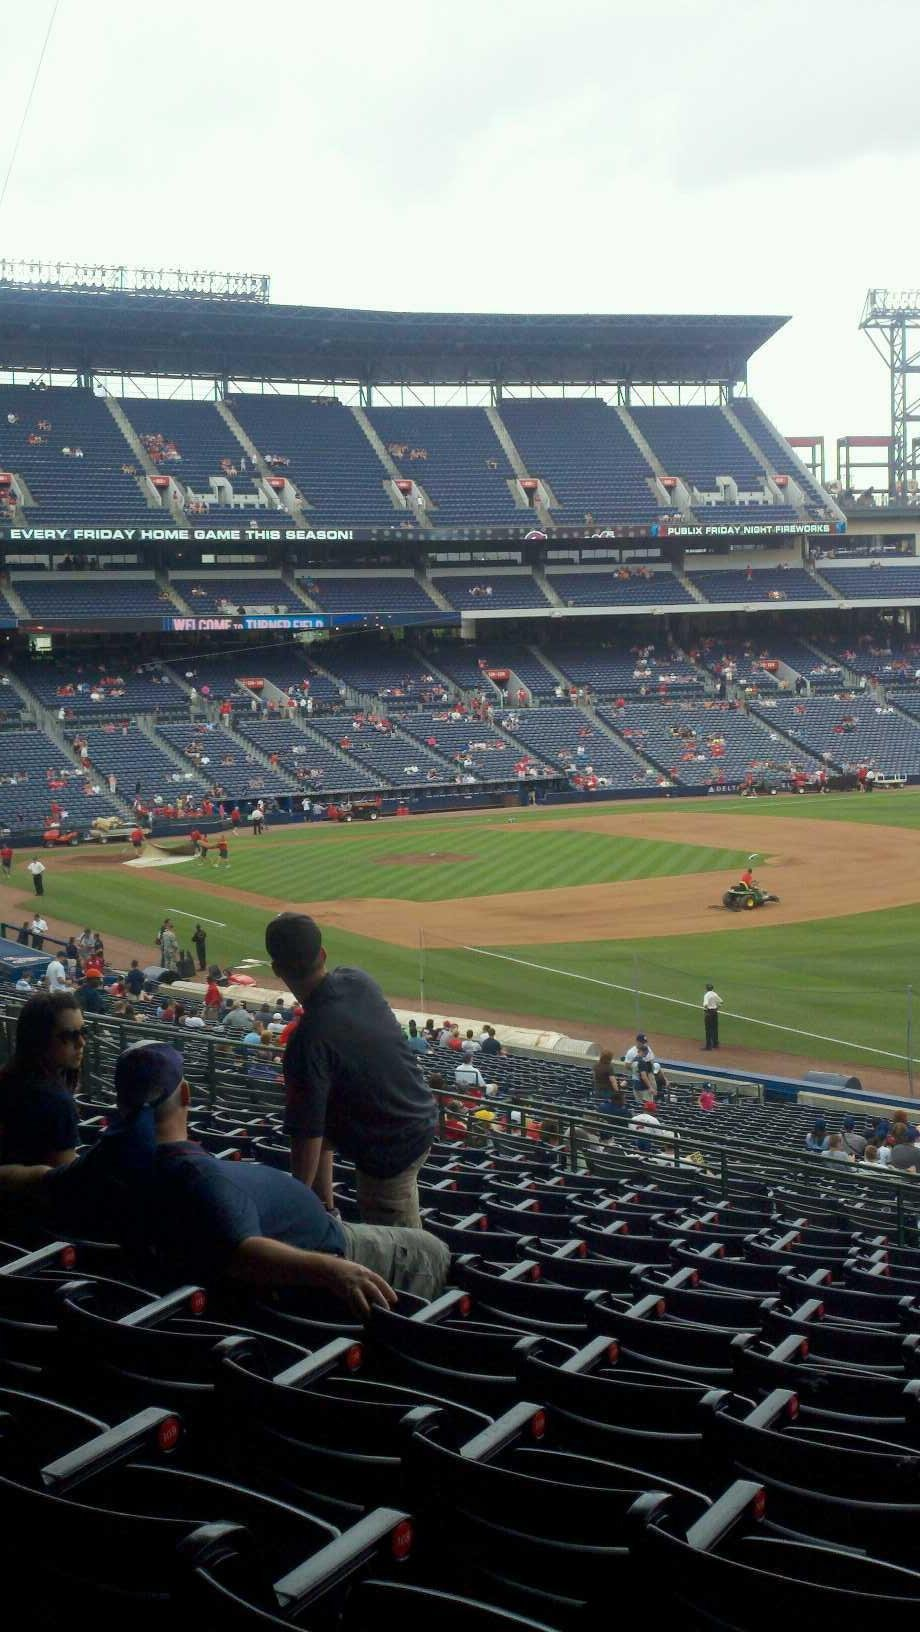 Turner Field Section 225 Row 11 Seat 5